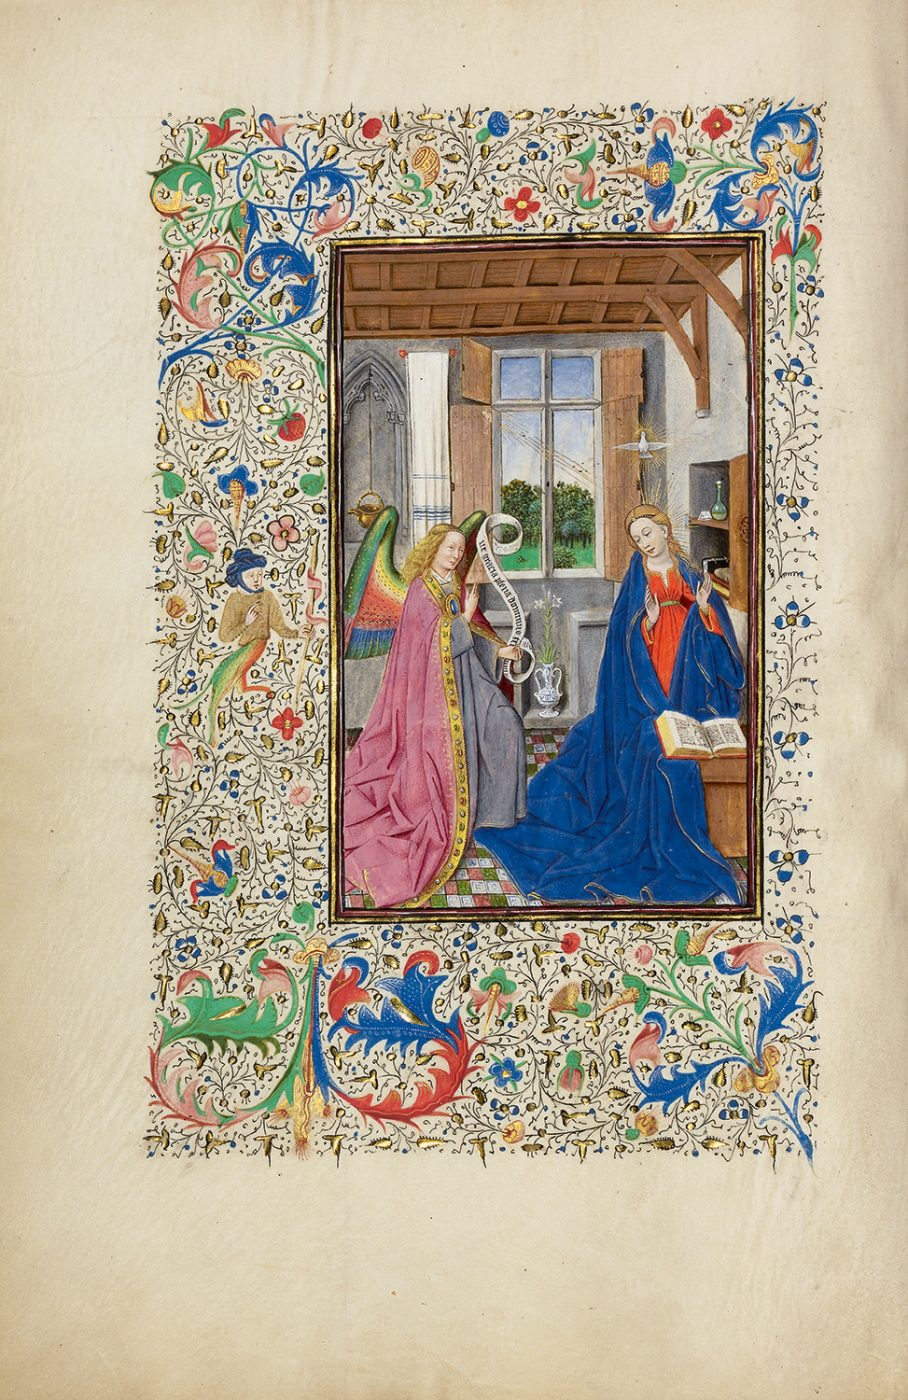 Willem Vrelant, De Annunciatie, uit Het Llangattock-getijdenboek, ca. 1450 (The J. Paul Getty Museum, Los Angeles)